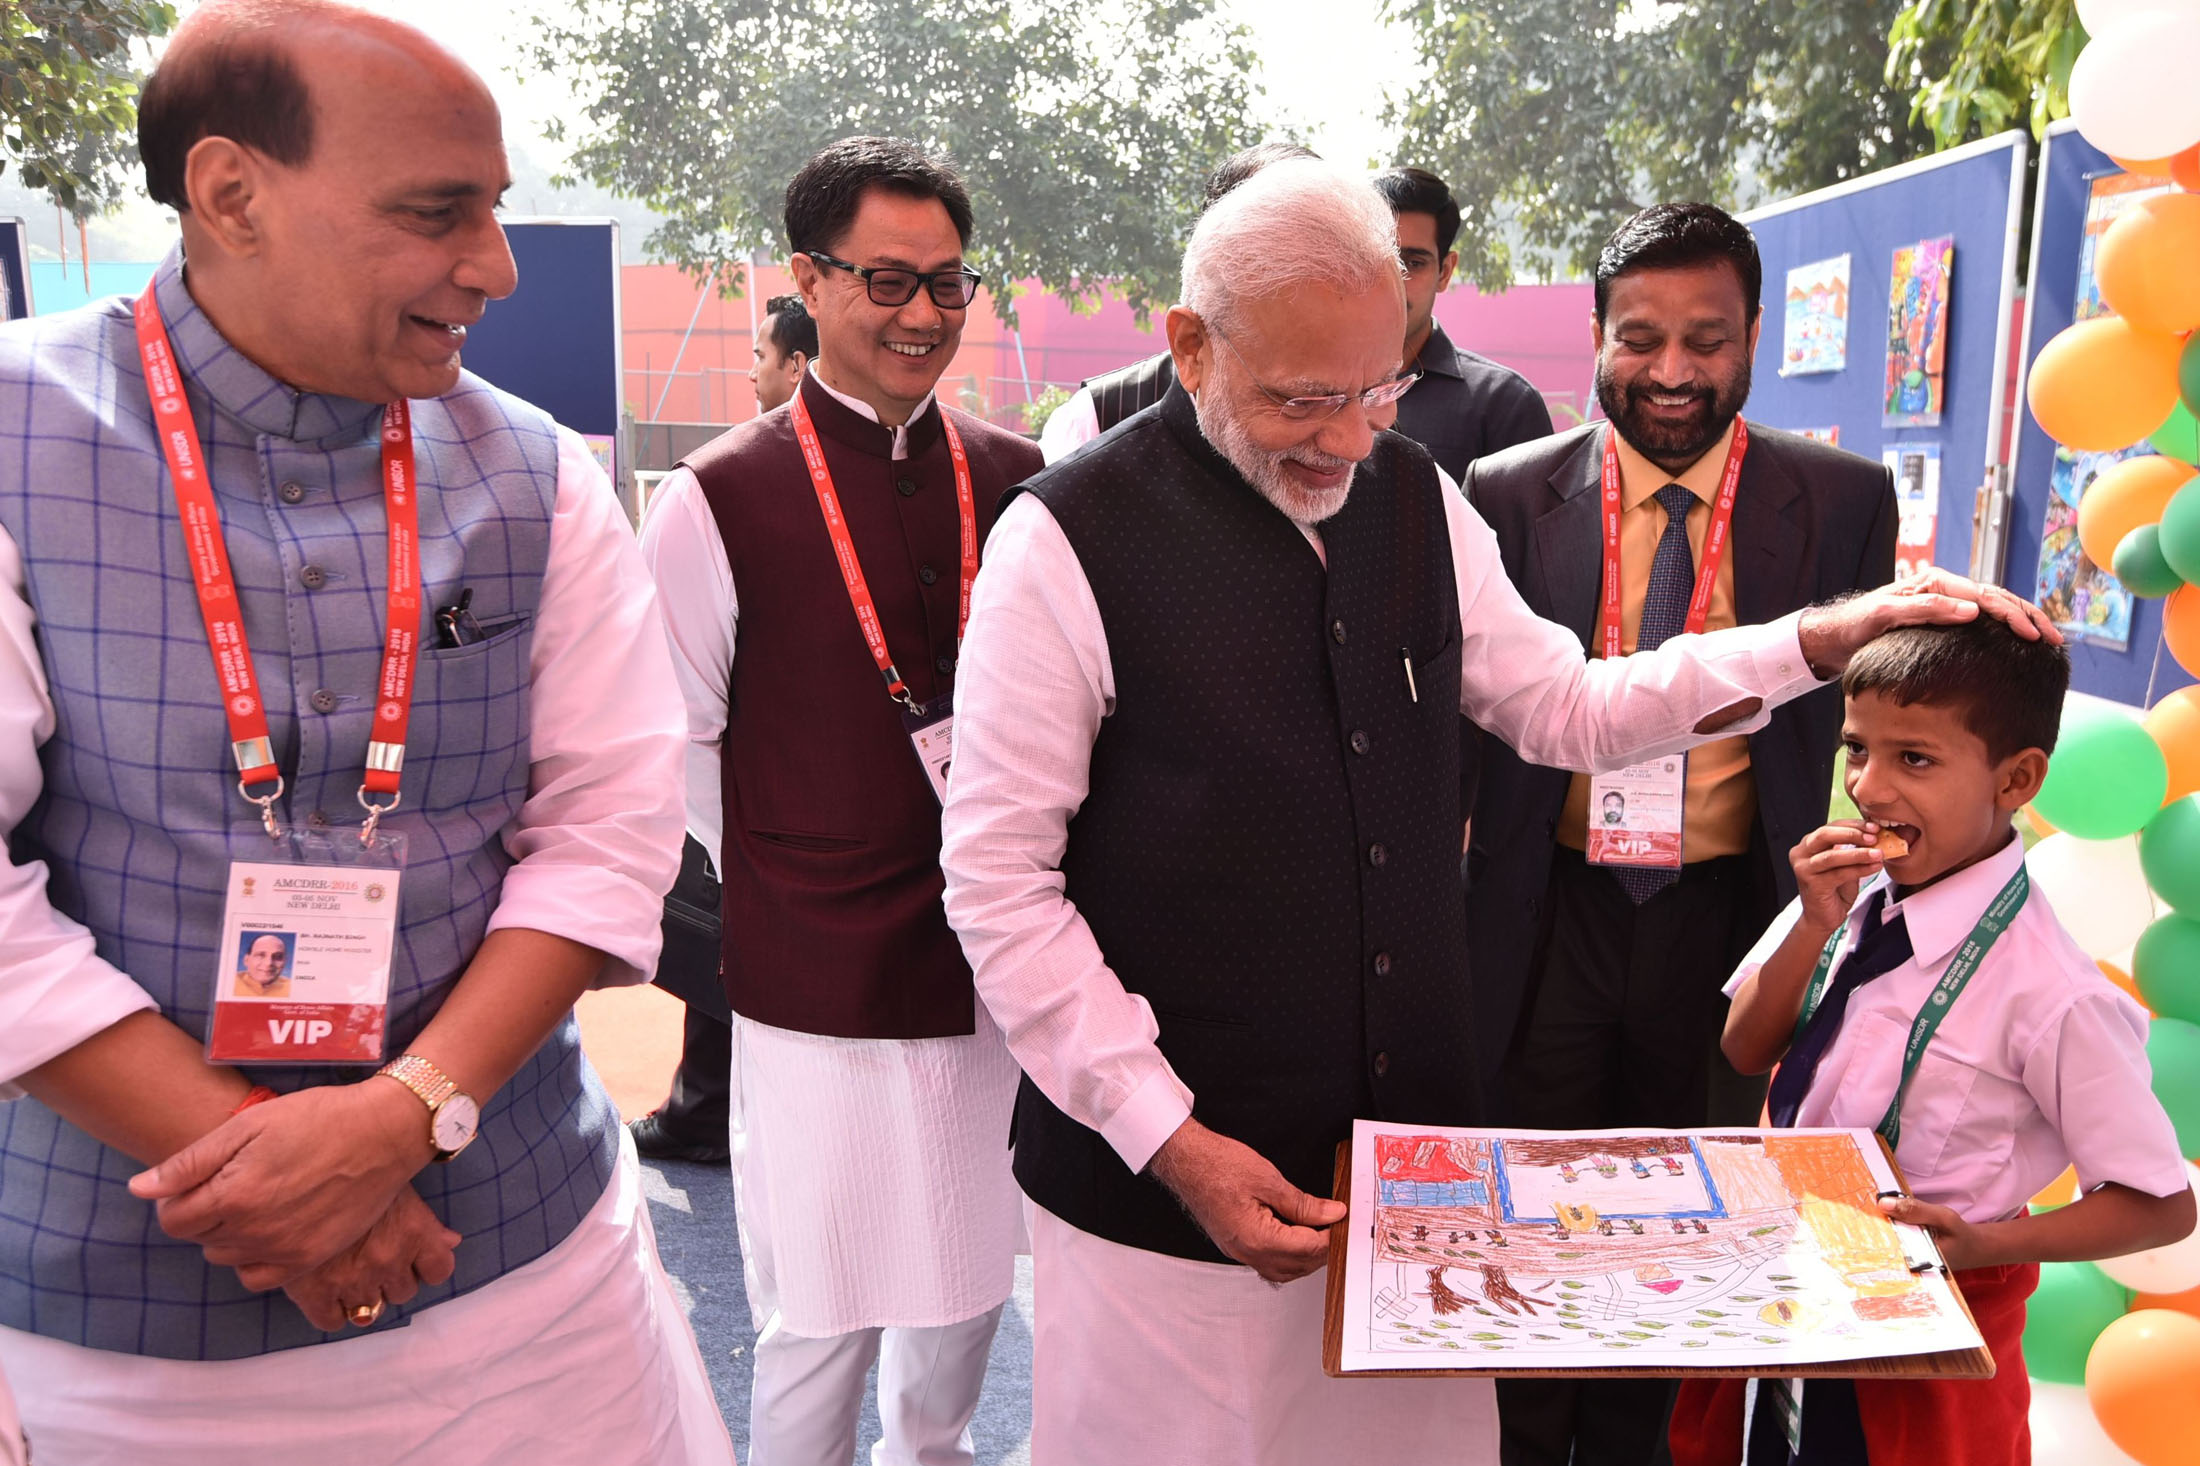 The Prime Minister, Shri Narendra Modi and Home Minister Shri Rajnath Singh with the participants of Painting Contest at the Asian Ministerial Conference on Disaster Risk Reduction, in New Delhi on November 03, 2016. 	The Minister of State for Home Affairs, Shri Kiren Rijiju also seen.